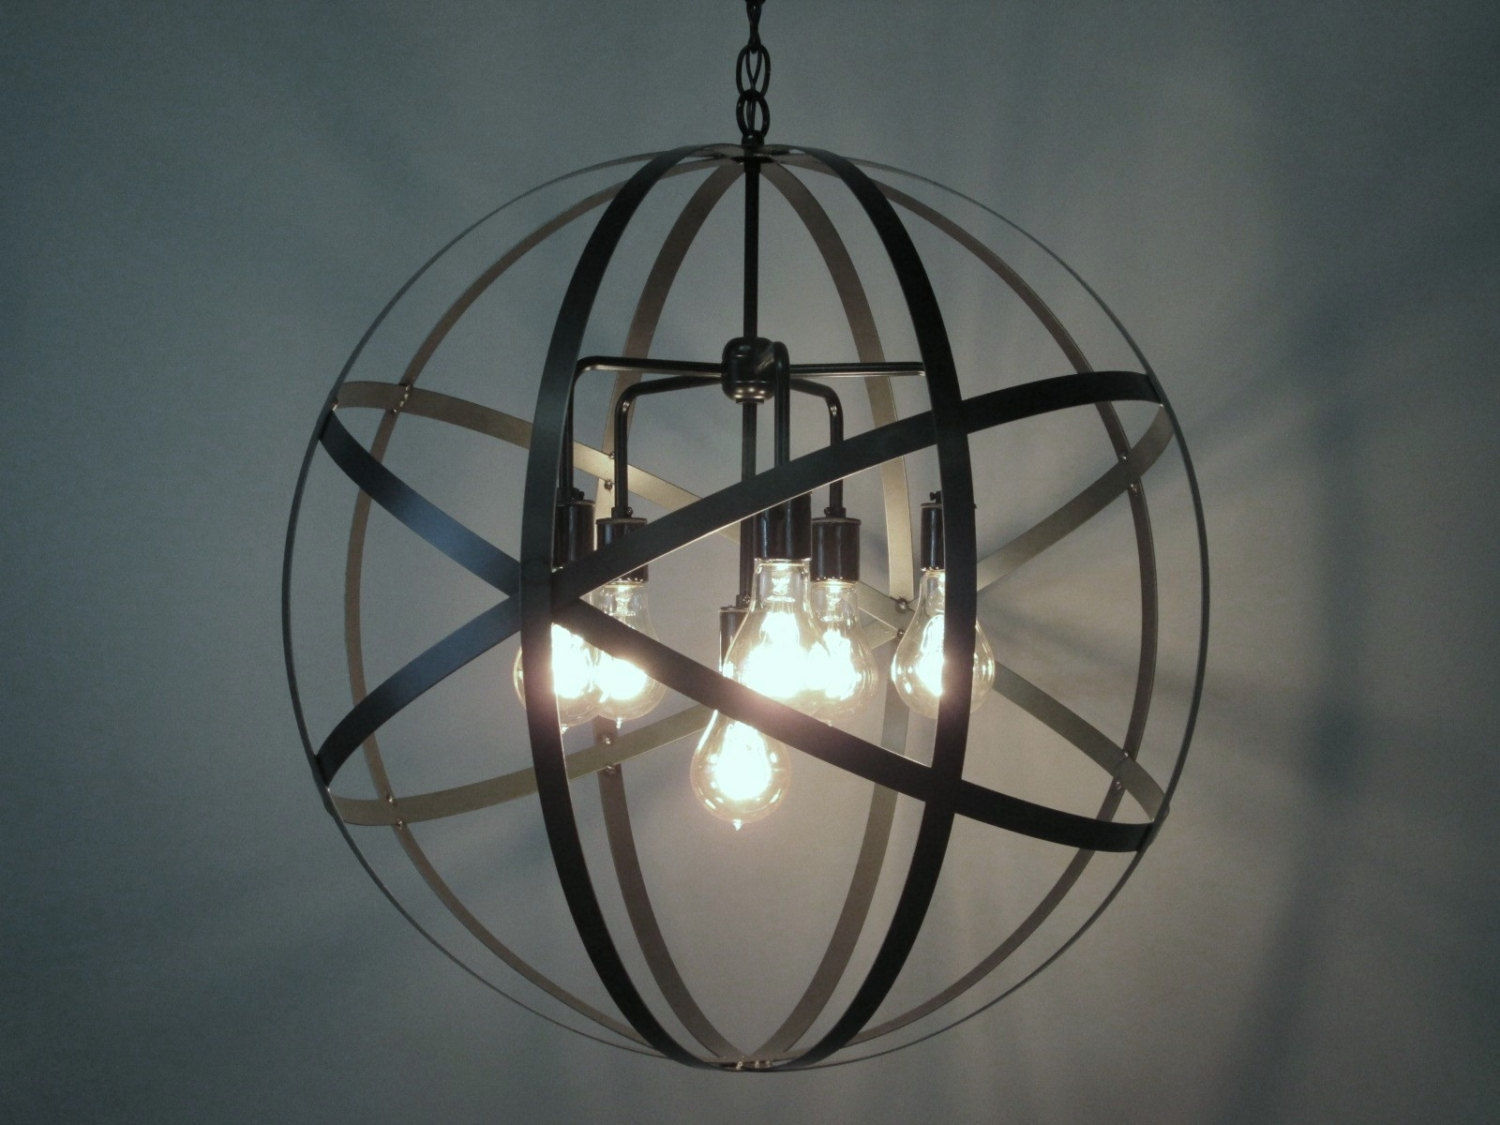 Industrial Orb Chandelier Ceiling Light Sphere 24 Intended For Orb Chandelier (Image 9 of 15)